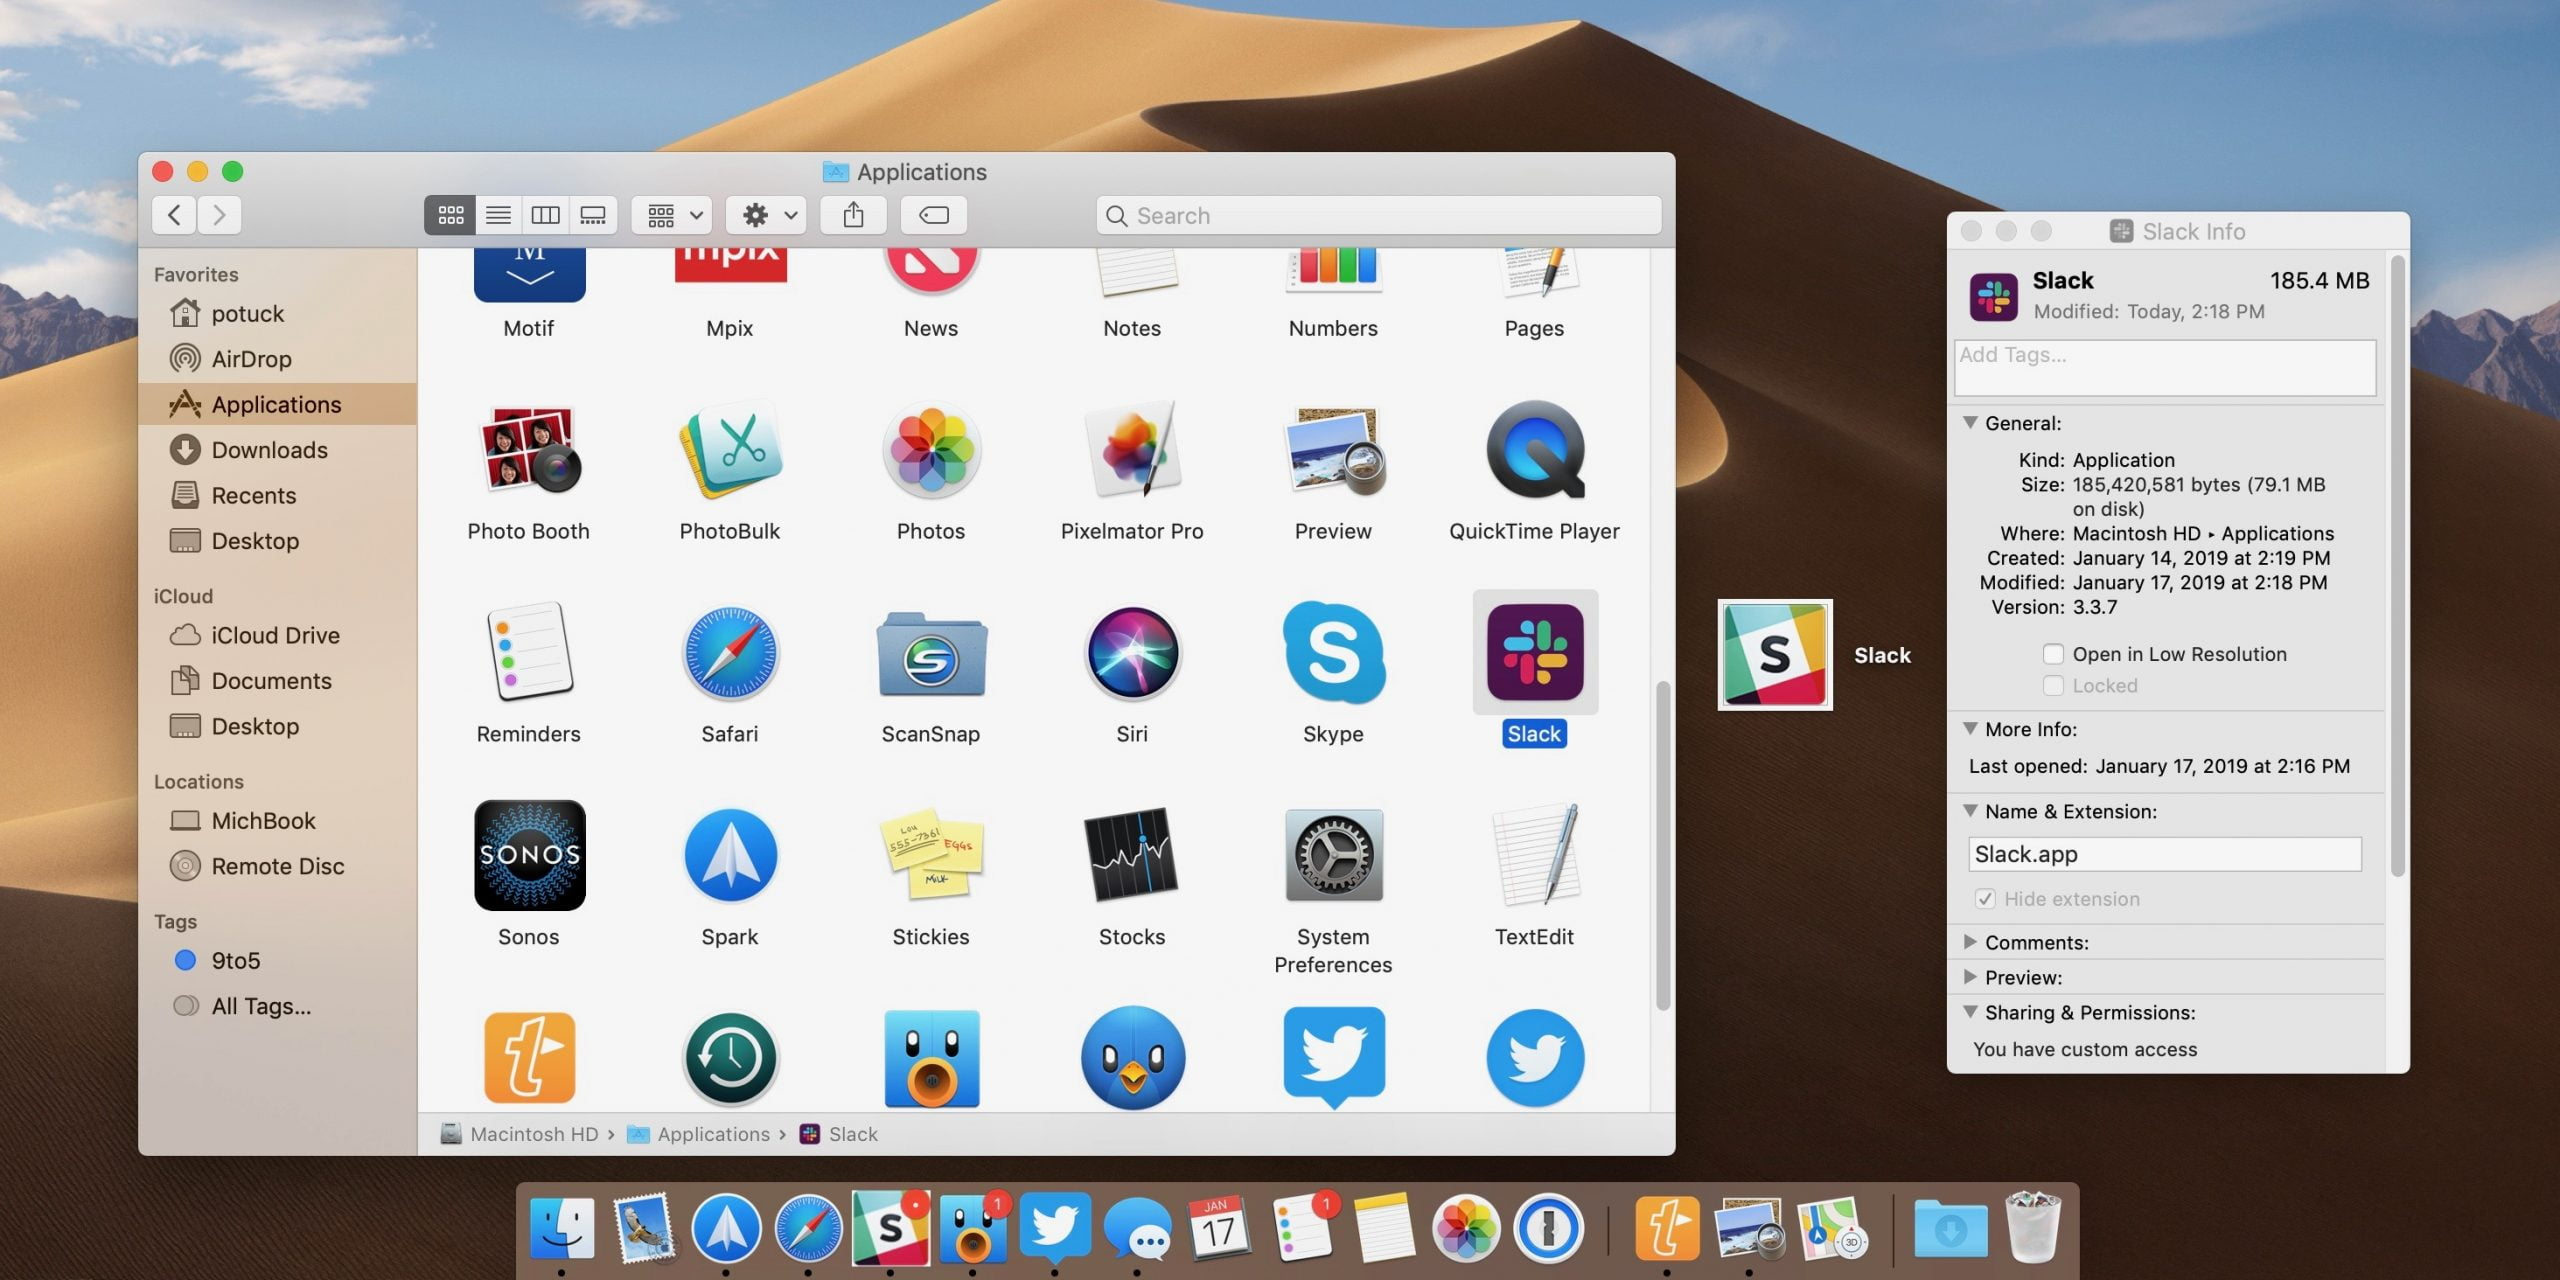 How to customize folder and application icons on our Mac